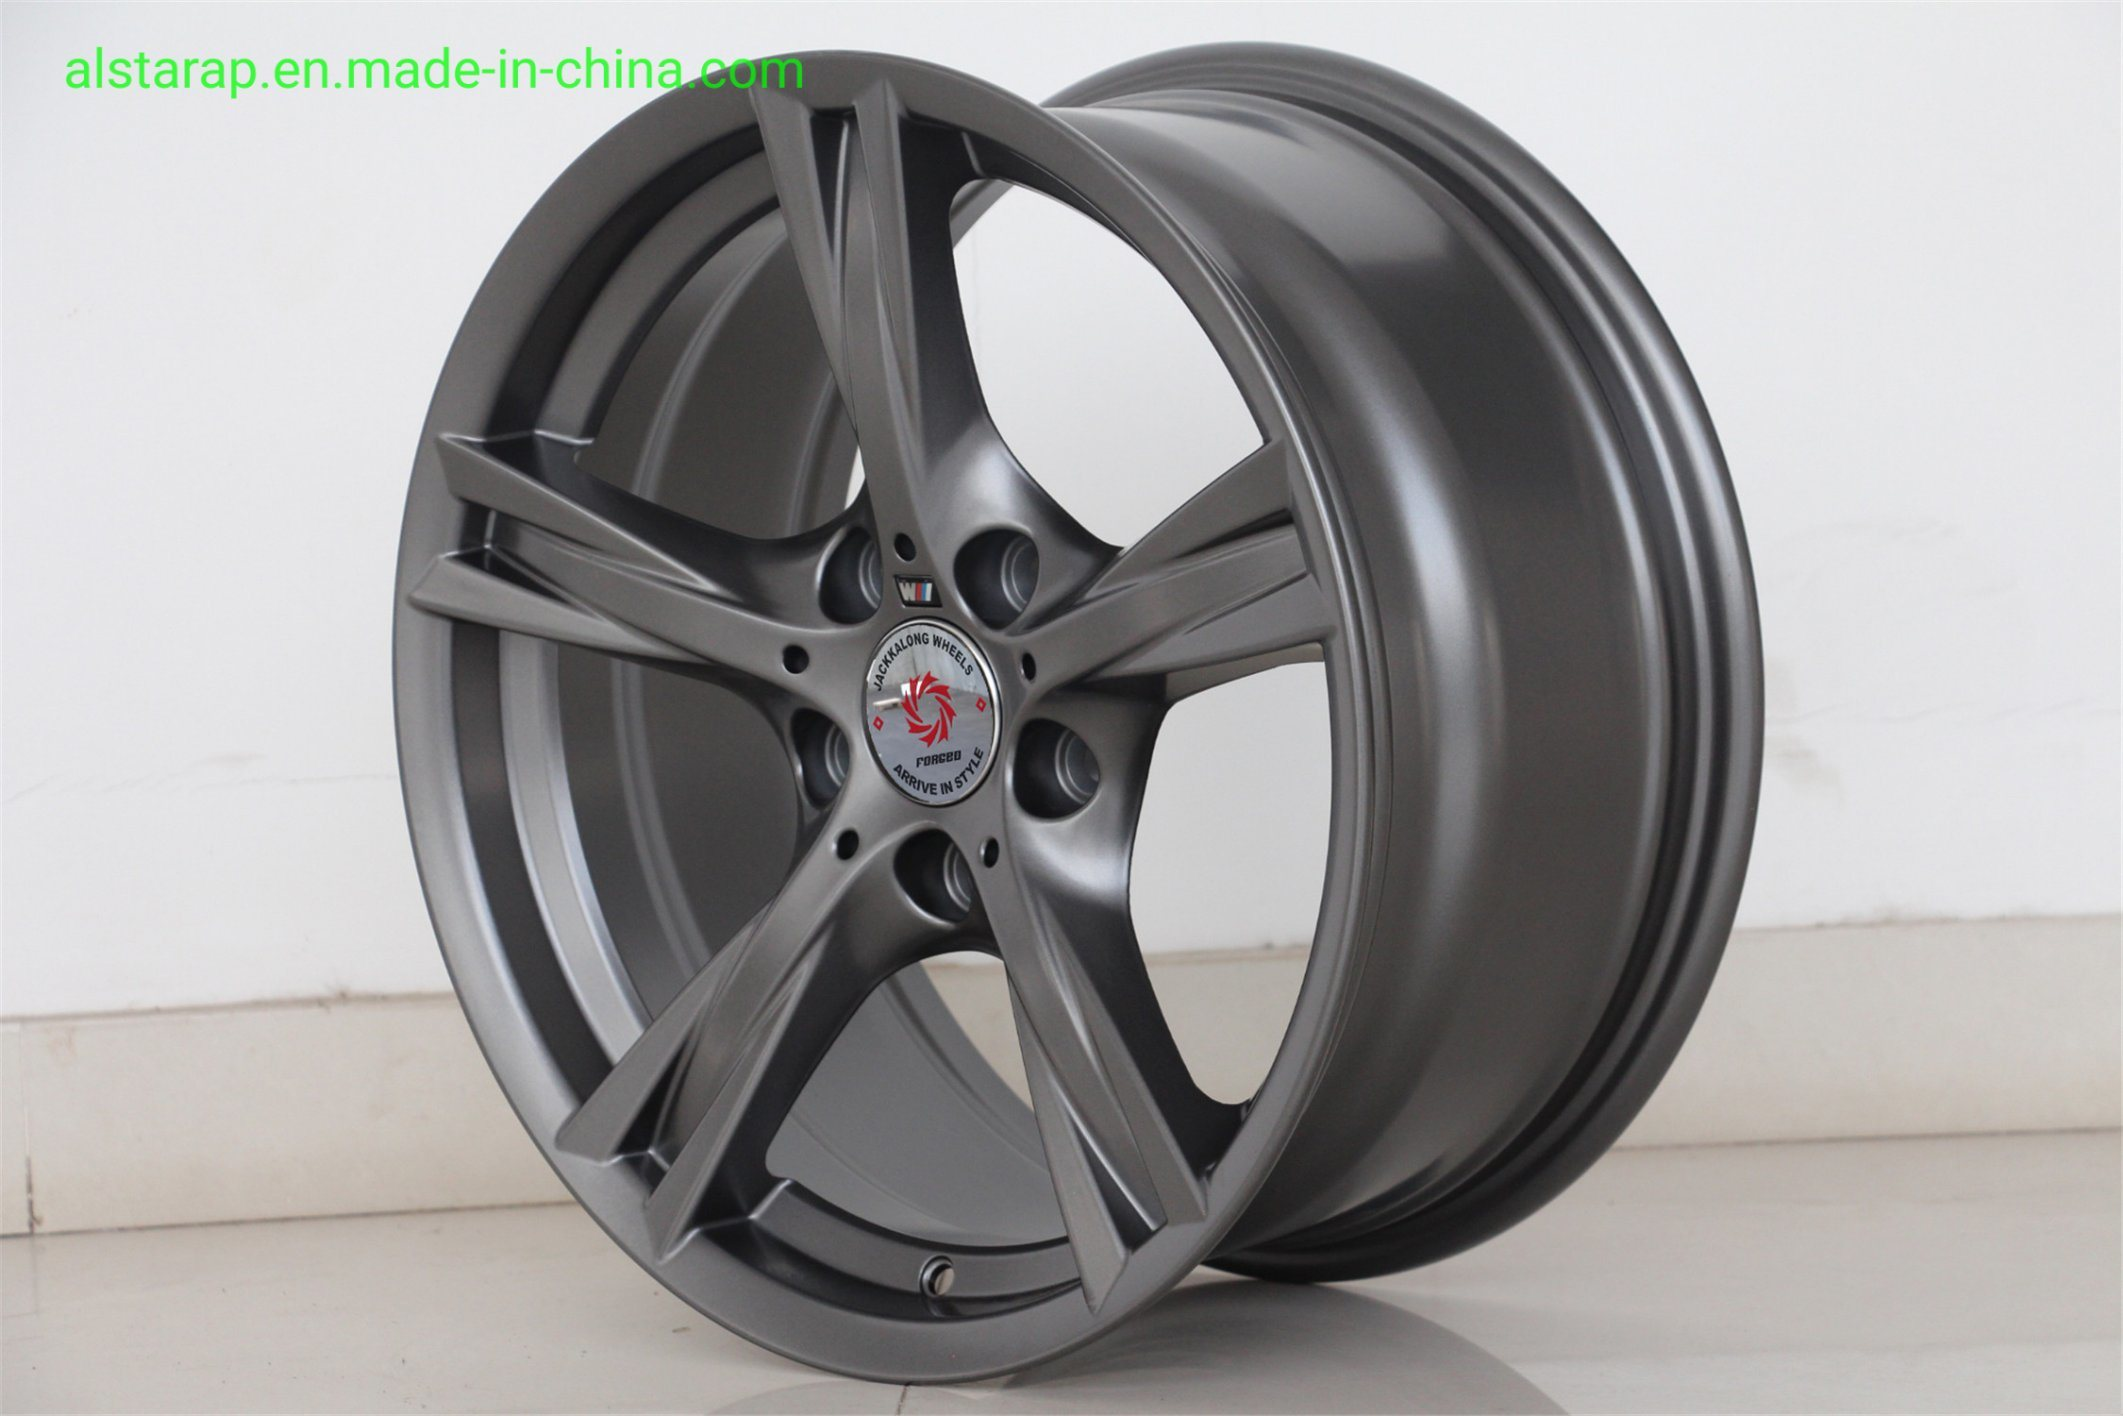 China Deep Dish Wheels For Sale For Bmw China Replica Wheel Car Rims